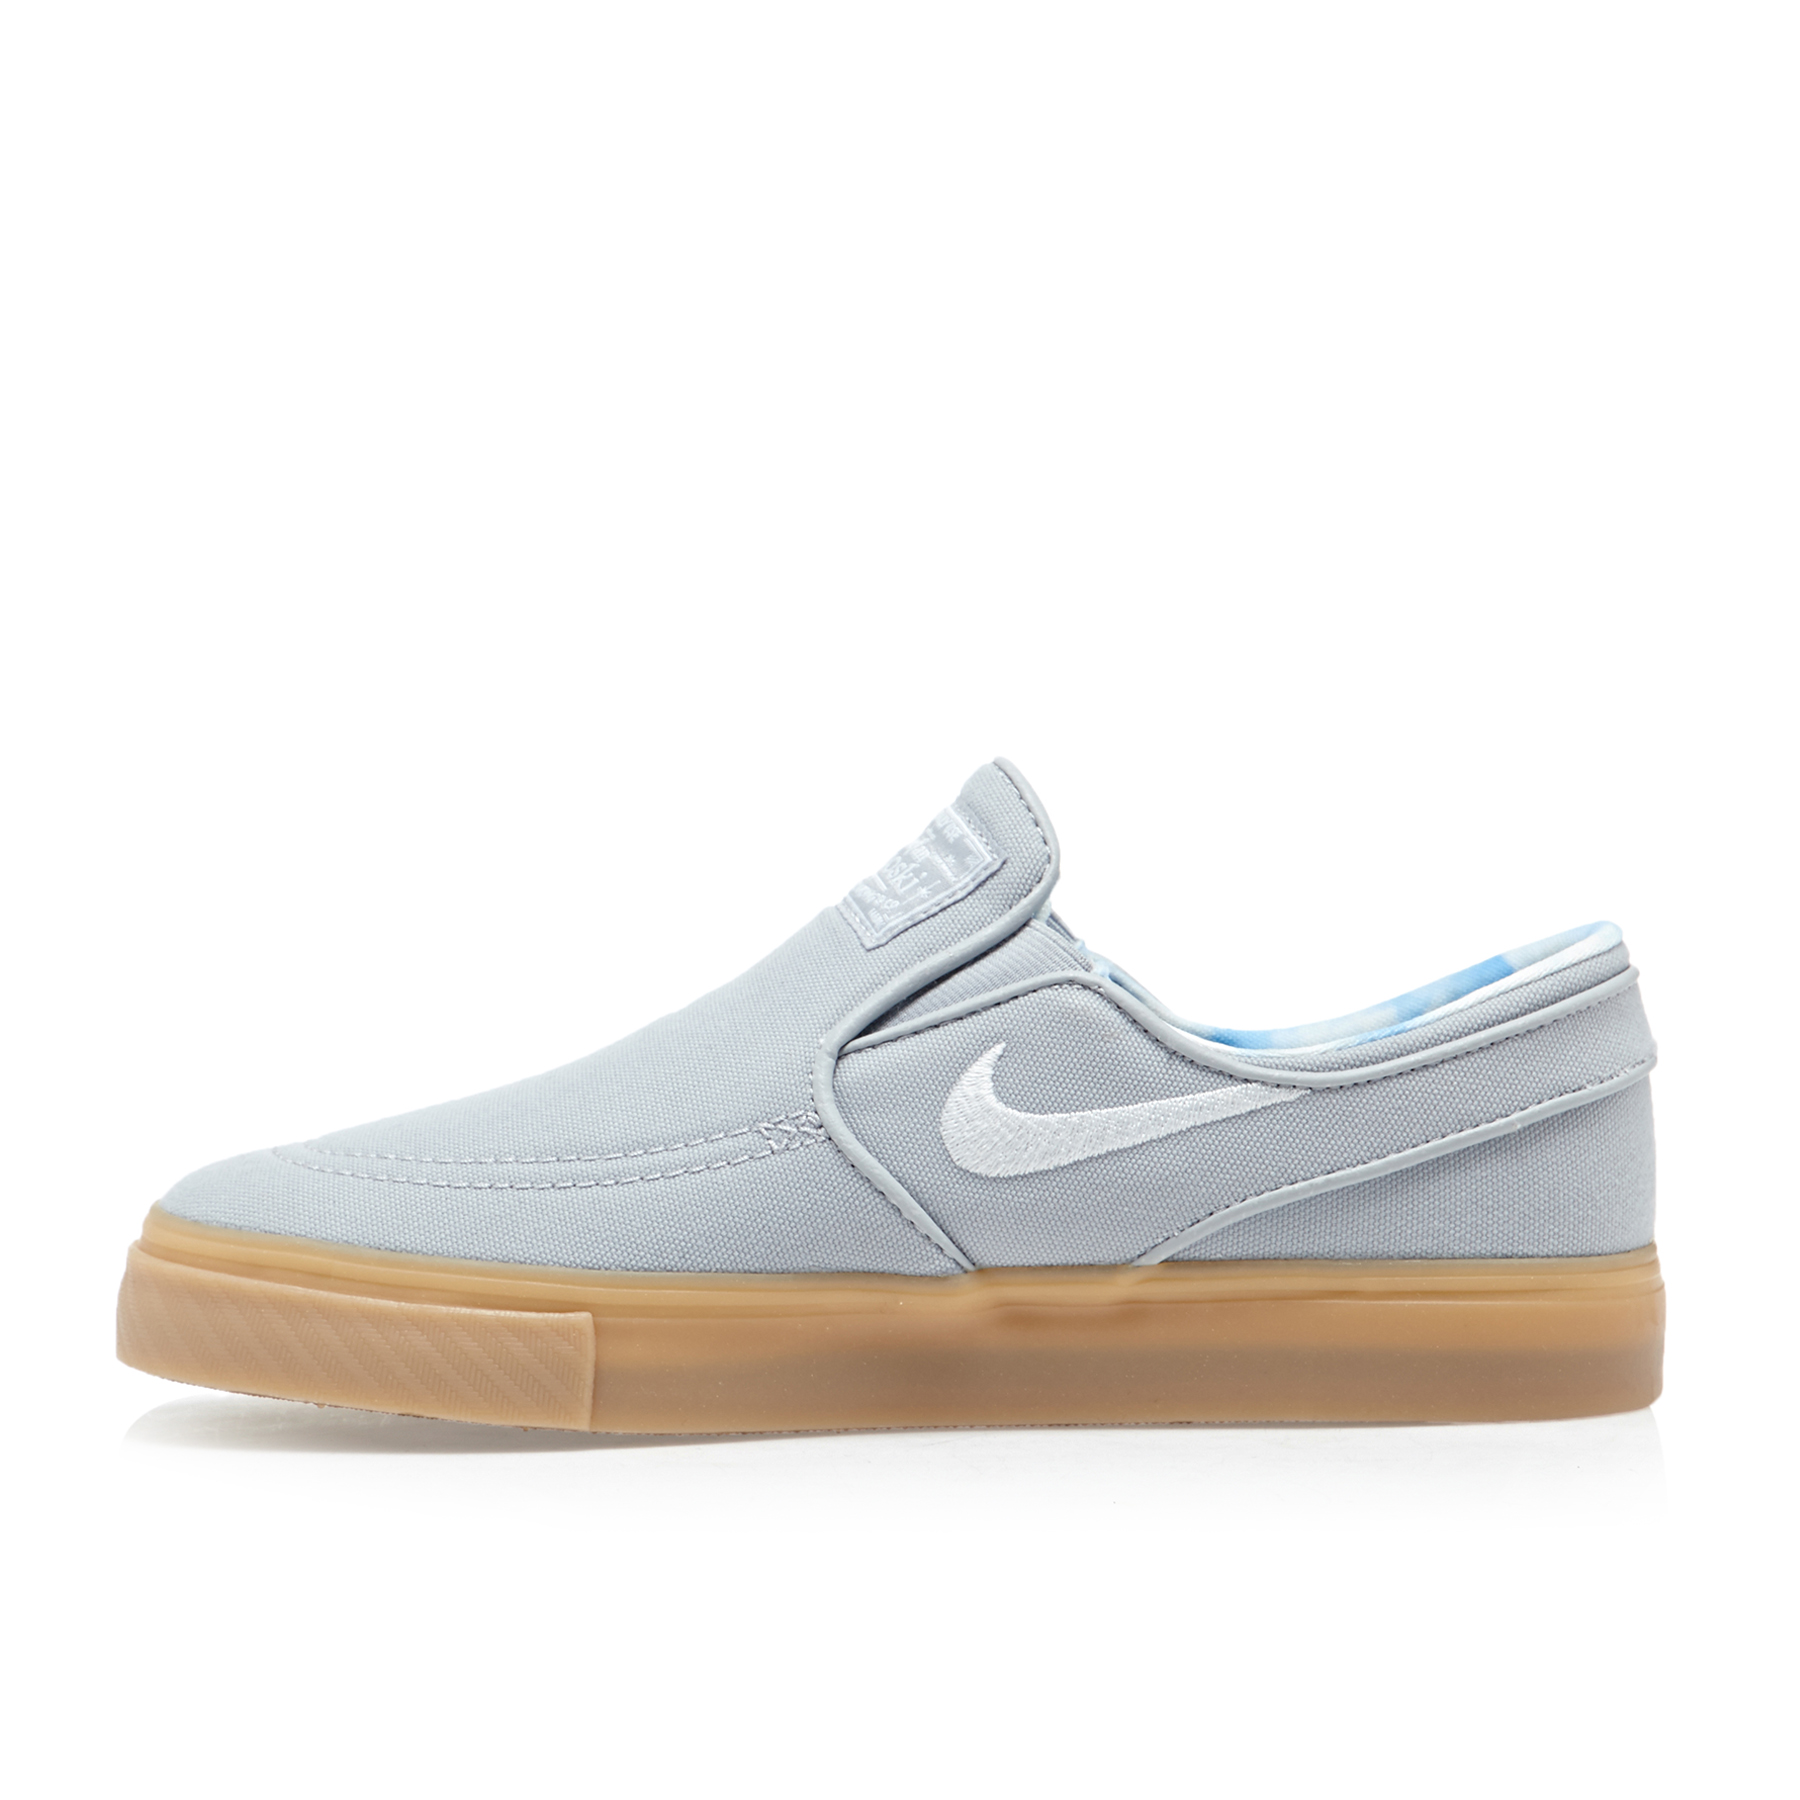 Chaussures Nike SB Stefan Janoski Canvas Slip On Print Gs